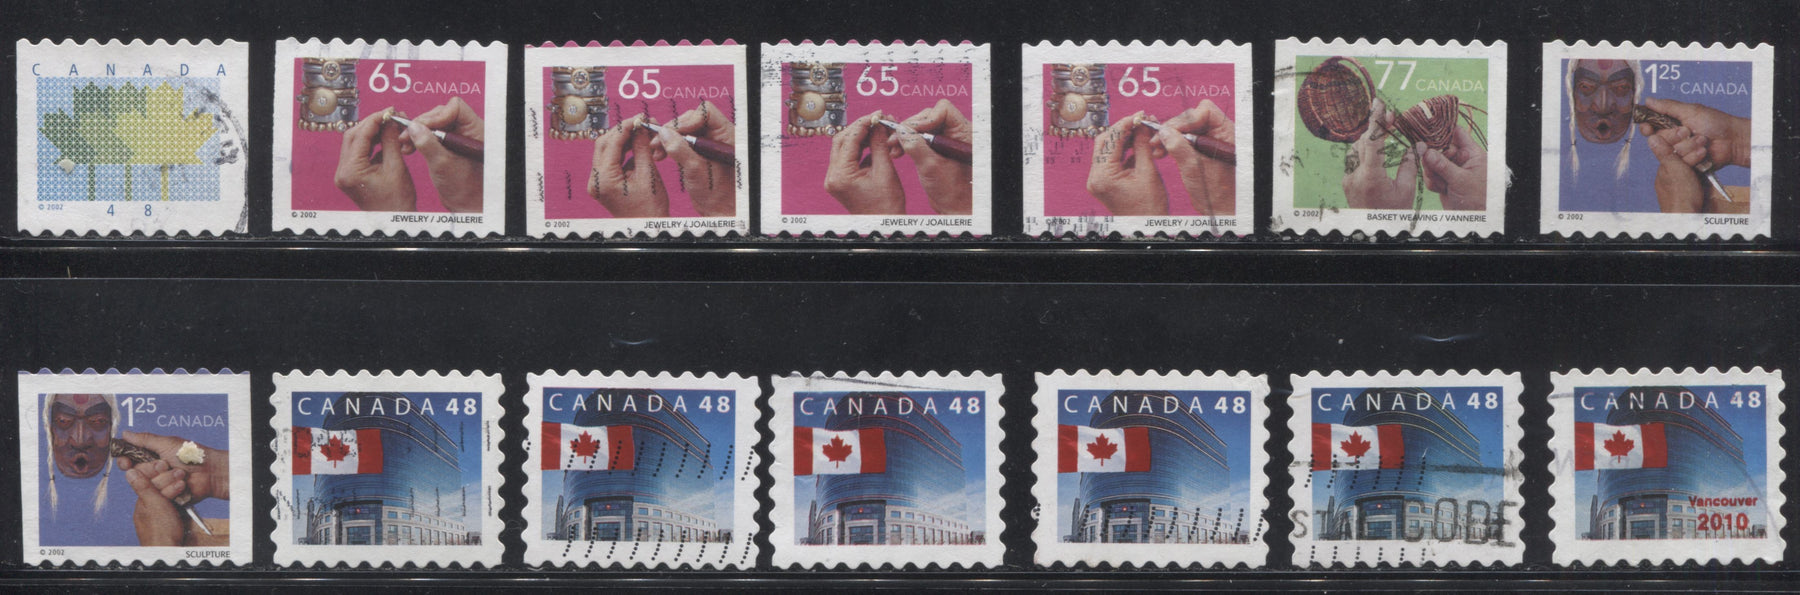 Canada #1927/1931 48c-$1.25 Multicolored 1998-2003 Trades and Wildlife Issue, A Specialized Lot of 14 VF Used Stamps